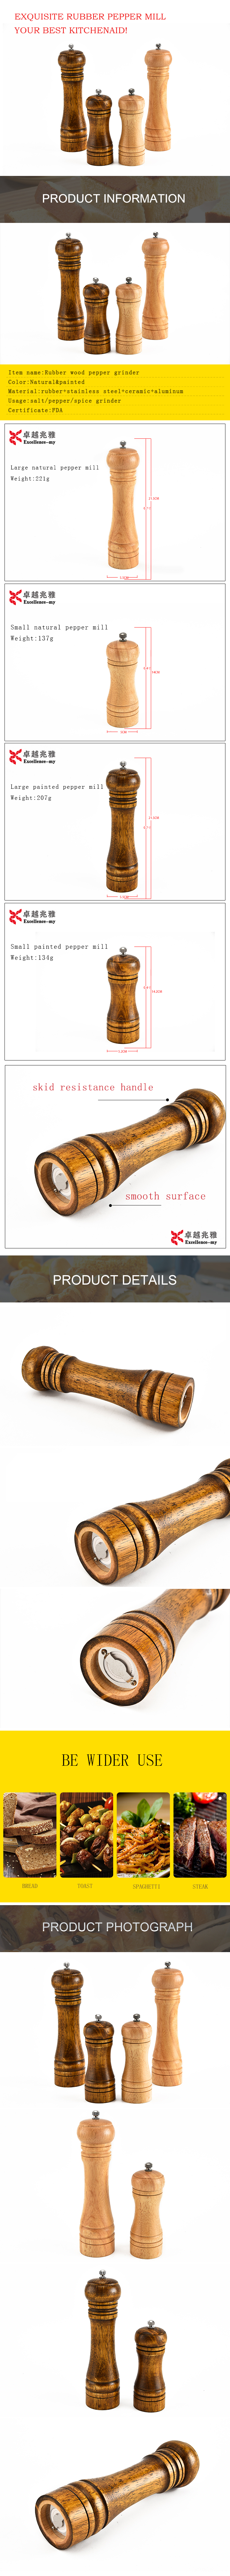 new styles Wholesale manual rubber wood food safe pepper mill printed grinder